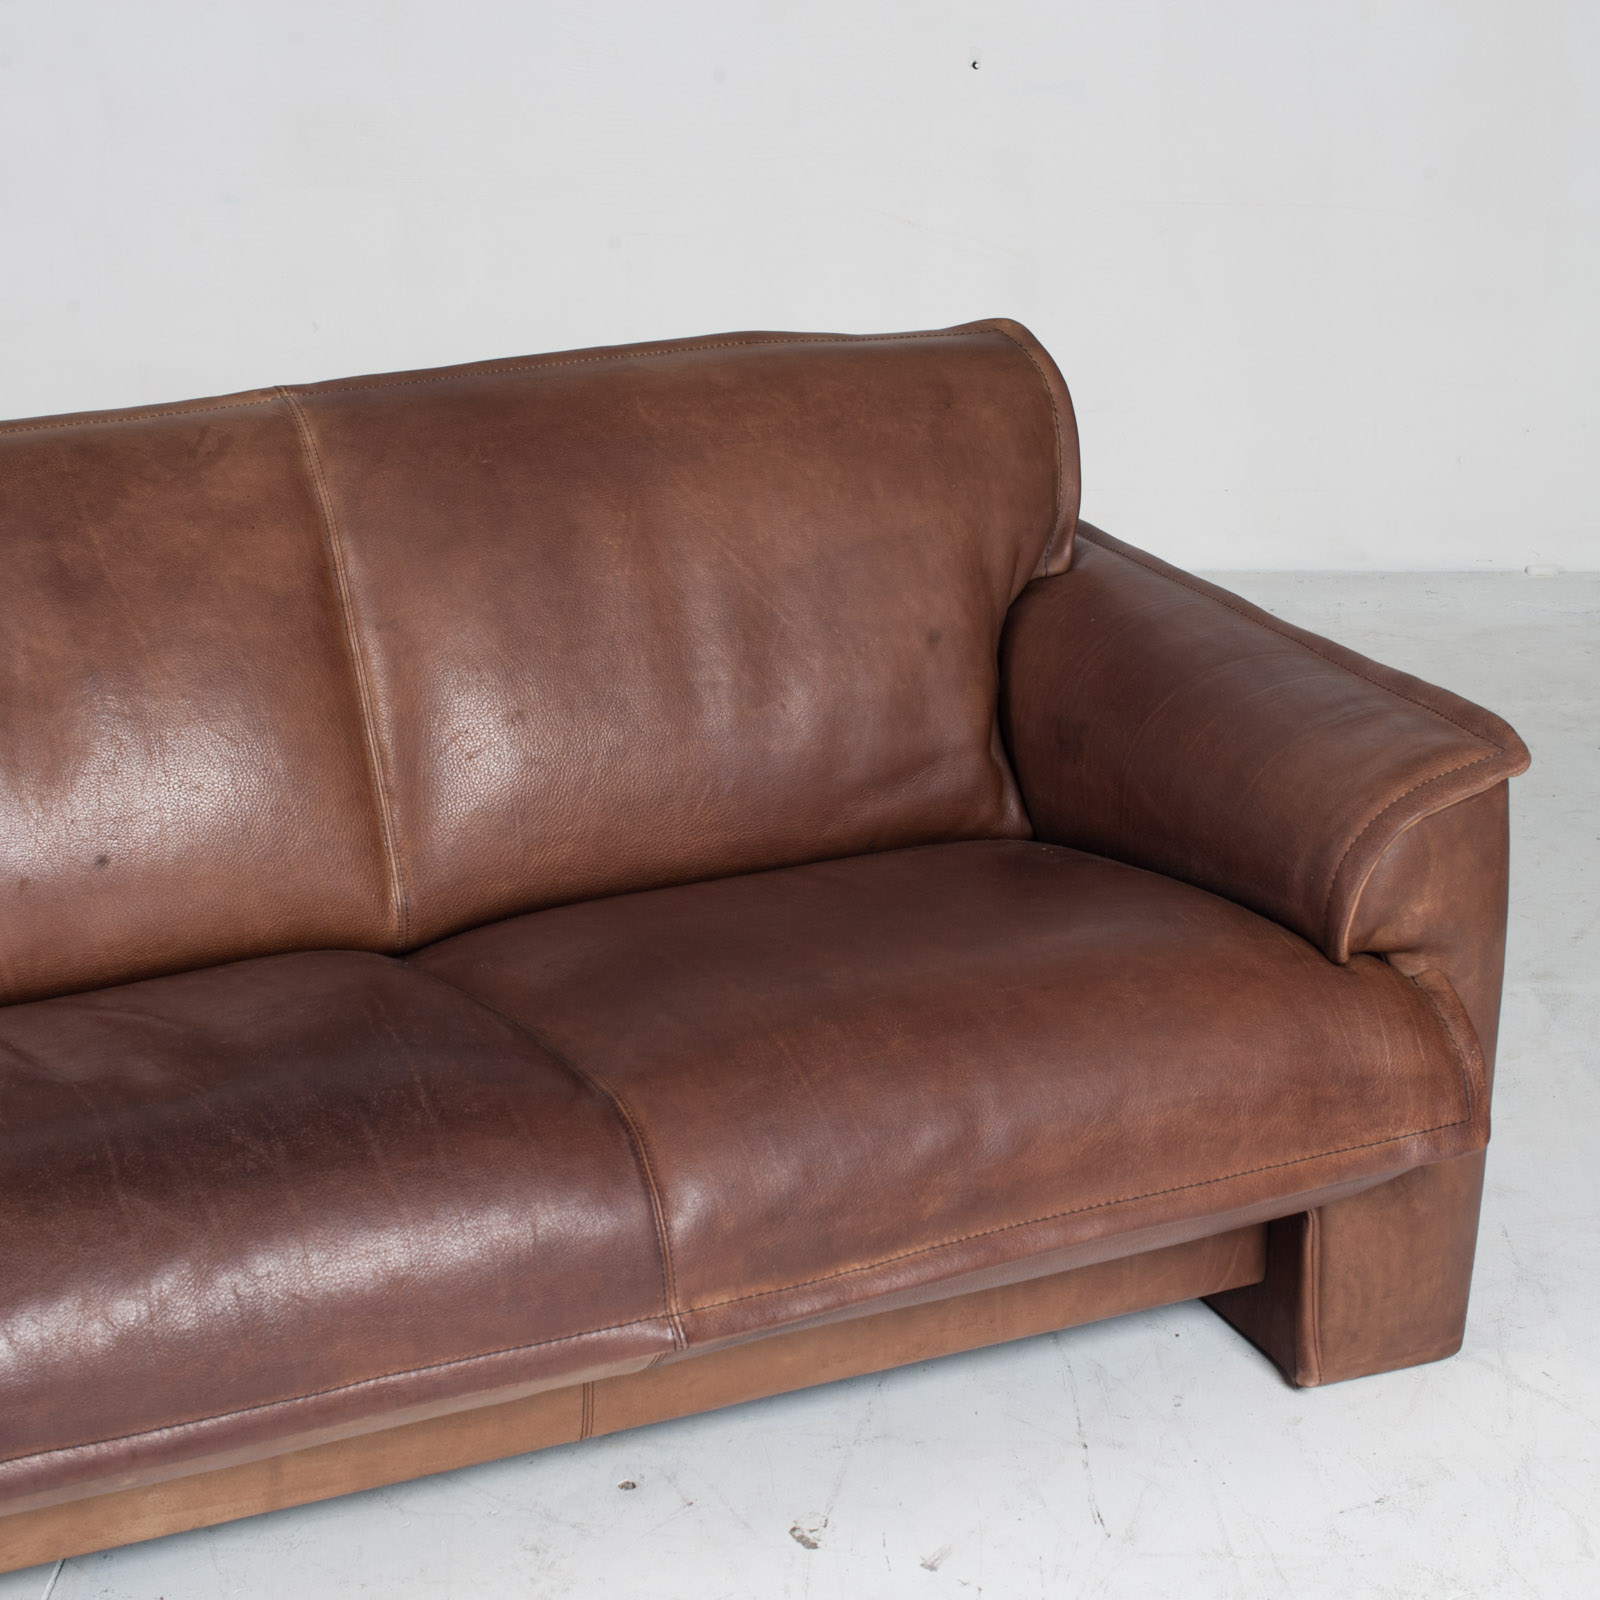 3 Seat Sofa By De Sede In Tan Neck Leather 1960s Denmark 04